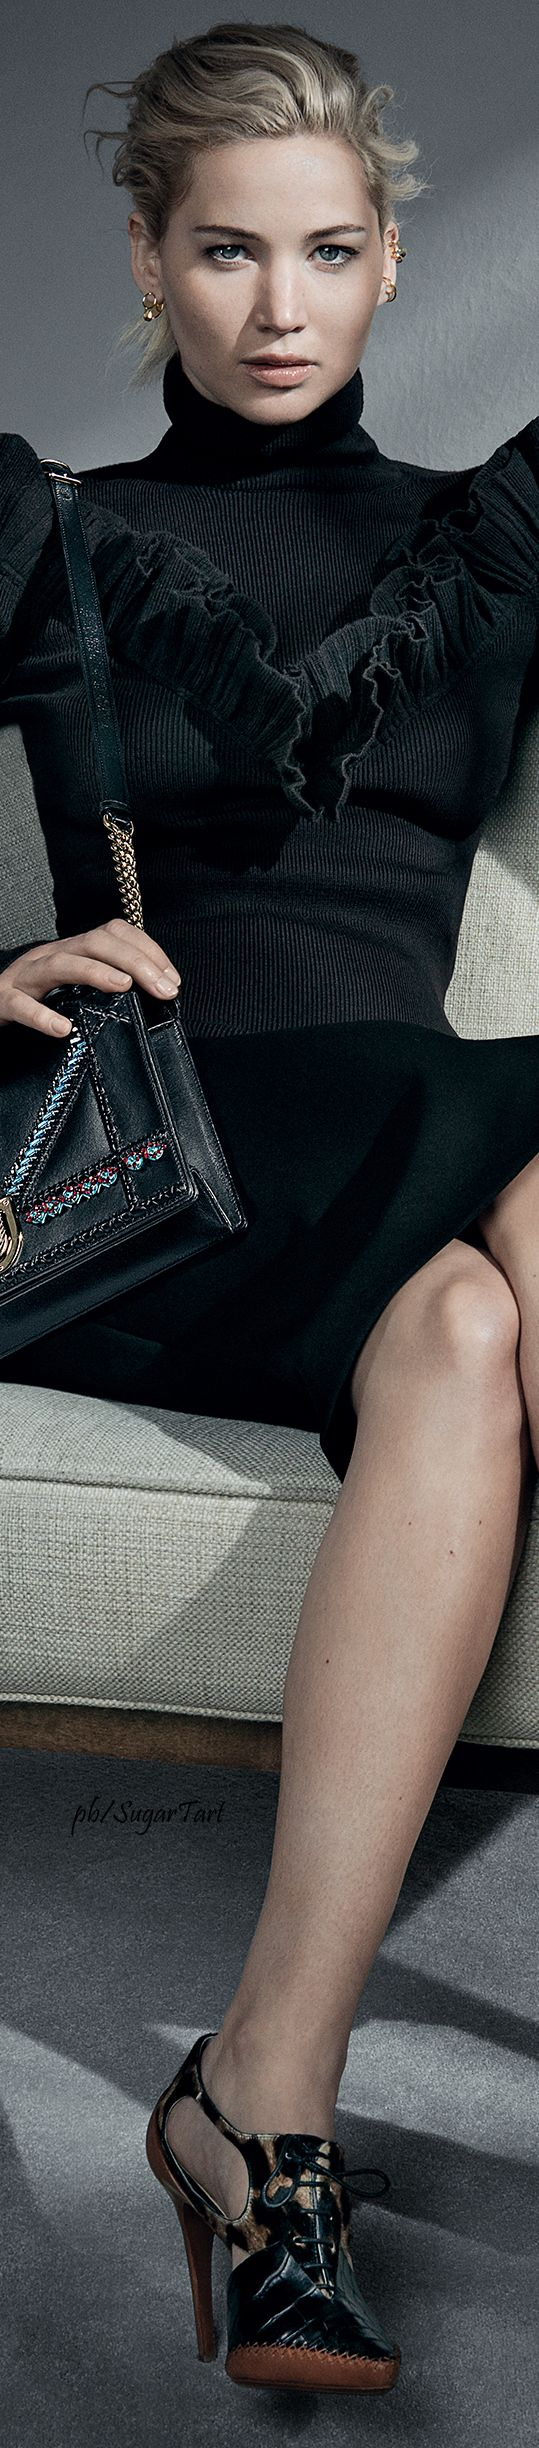 Jennifer Lawrence for Dior                                                                                                                                                                                 More